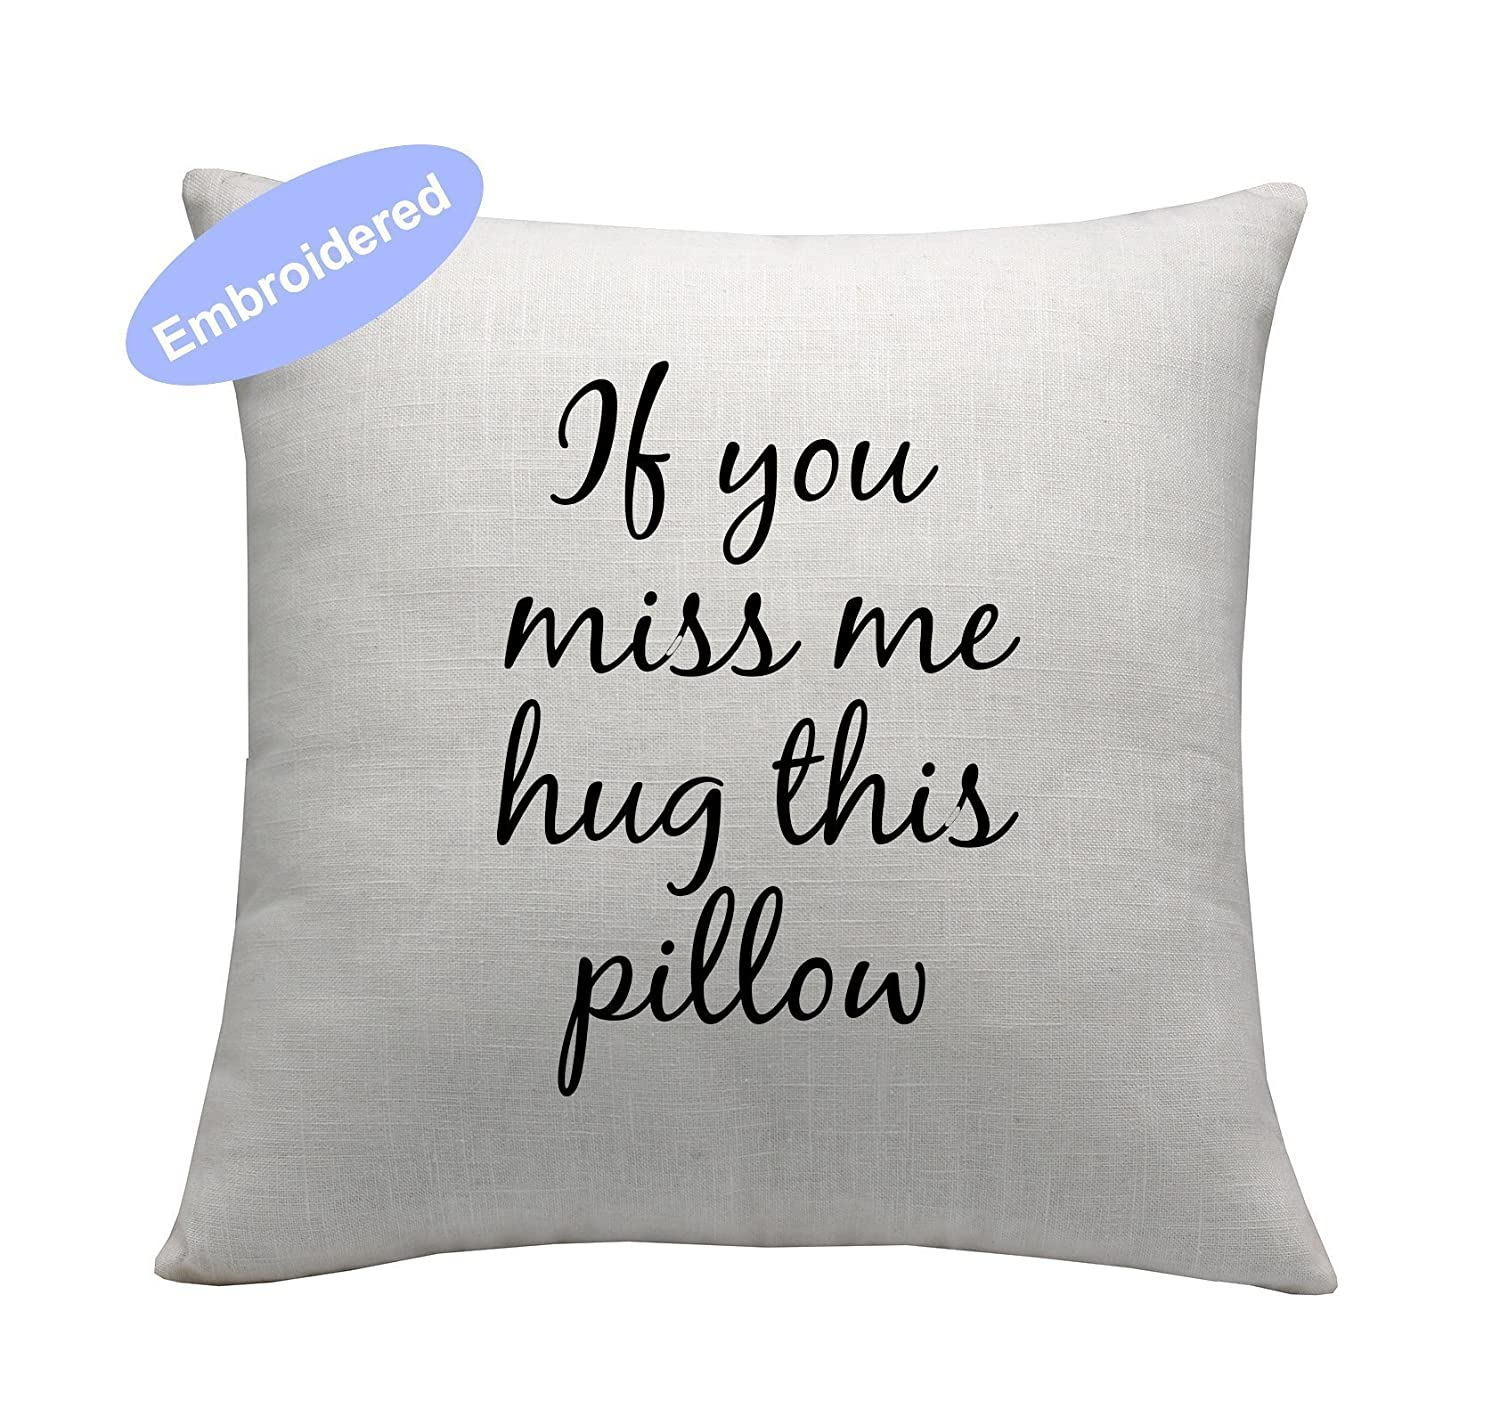 Yugtex Cushion Cover Embroidered If you miss me hug this pillow, Long distance relationship Gift Pillow case Boyfriend Love Friendship Friend I miss you gift Missing gift,Gift Pillow,Personalized Gifts